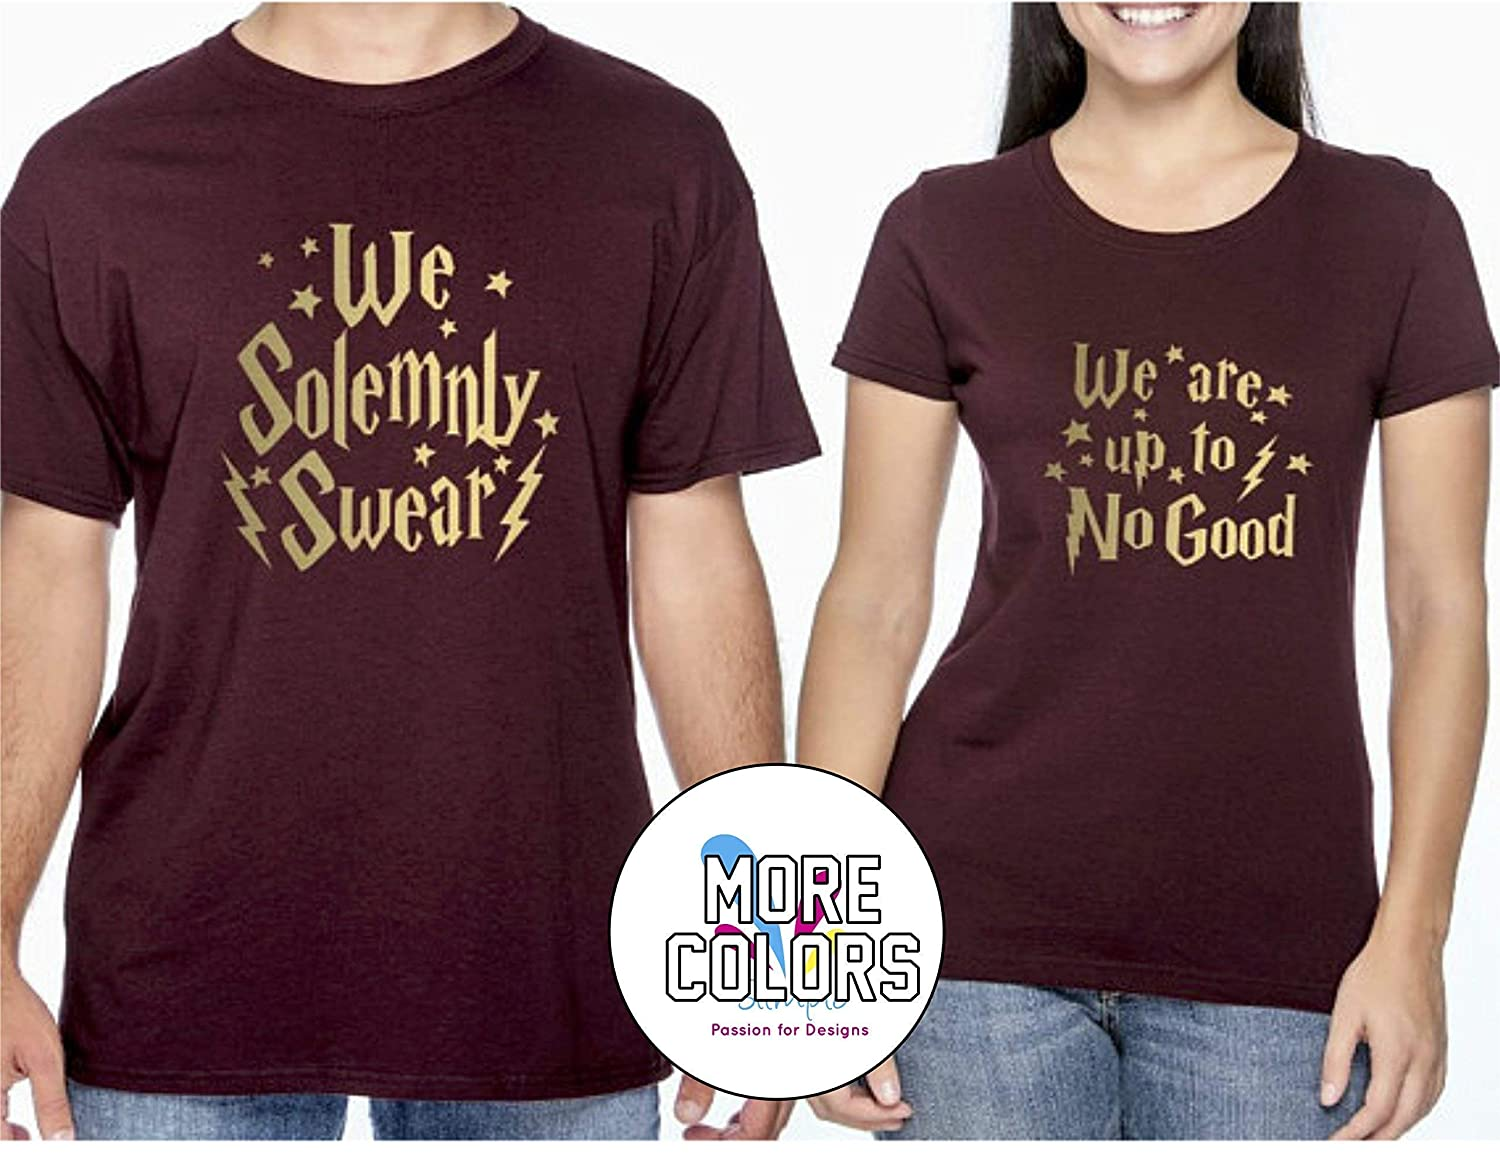 Harry Potter Couple Matching Shirt T-Shirt Funny Tee Gift for Him Her Halloween